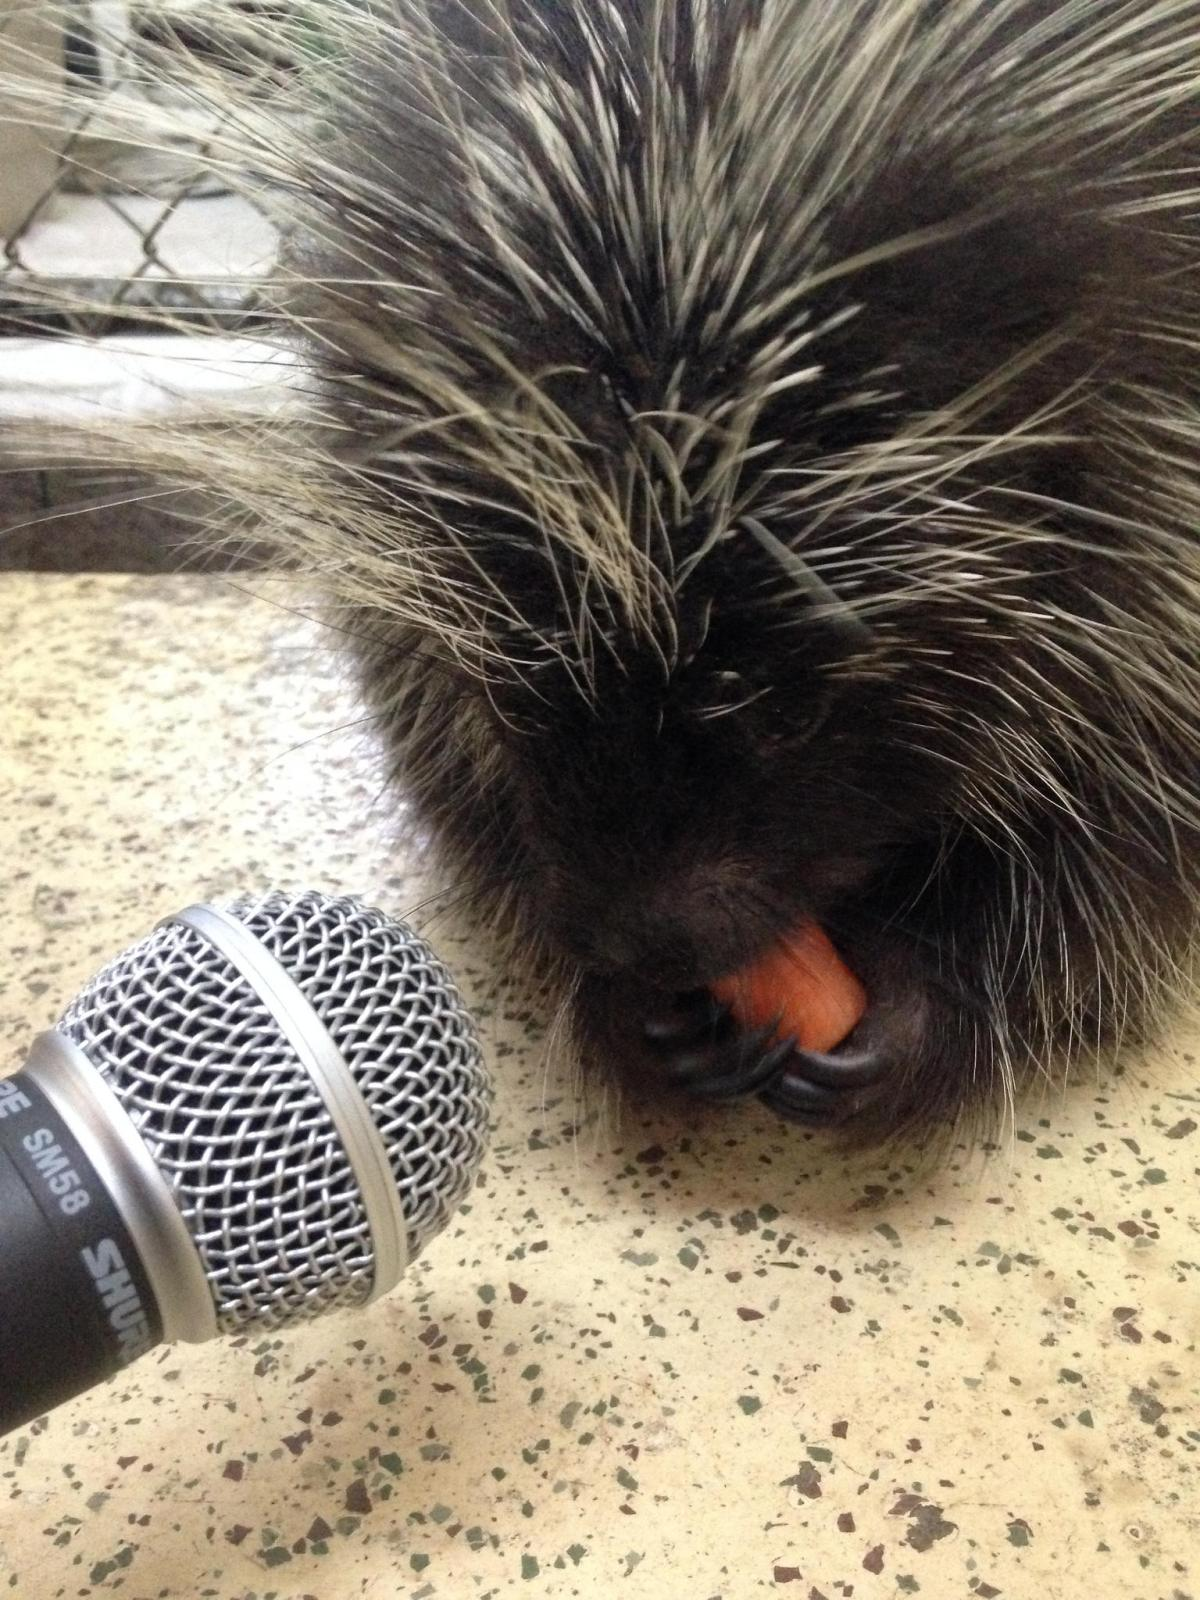 Irwin the North American porcupine wasn't in the mood to talk to producer Andy Kubis when she visited the wildlife rescue center. But he was otherwise friendly. Photo: Andy Kubis